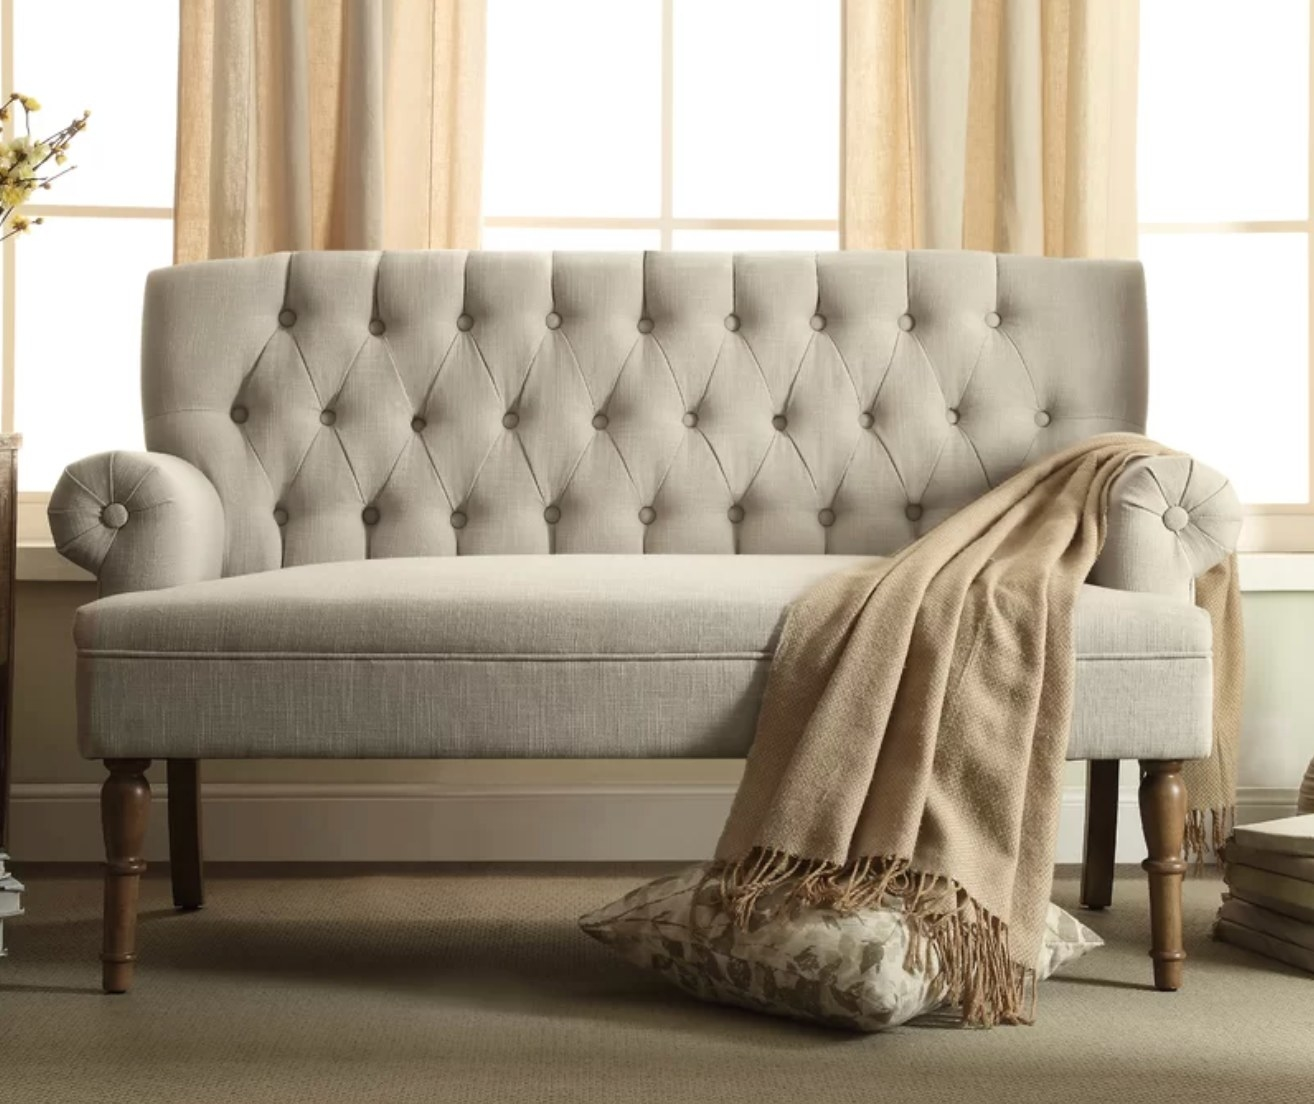 The rolled arm sofa in beige with a brown blanket draped over it